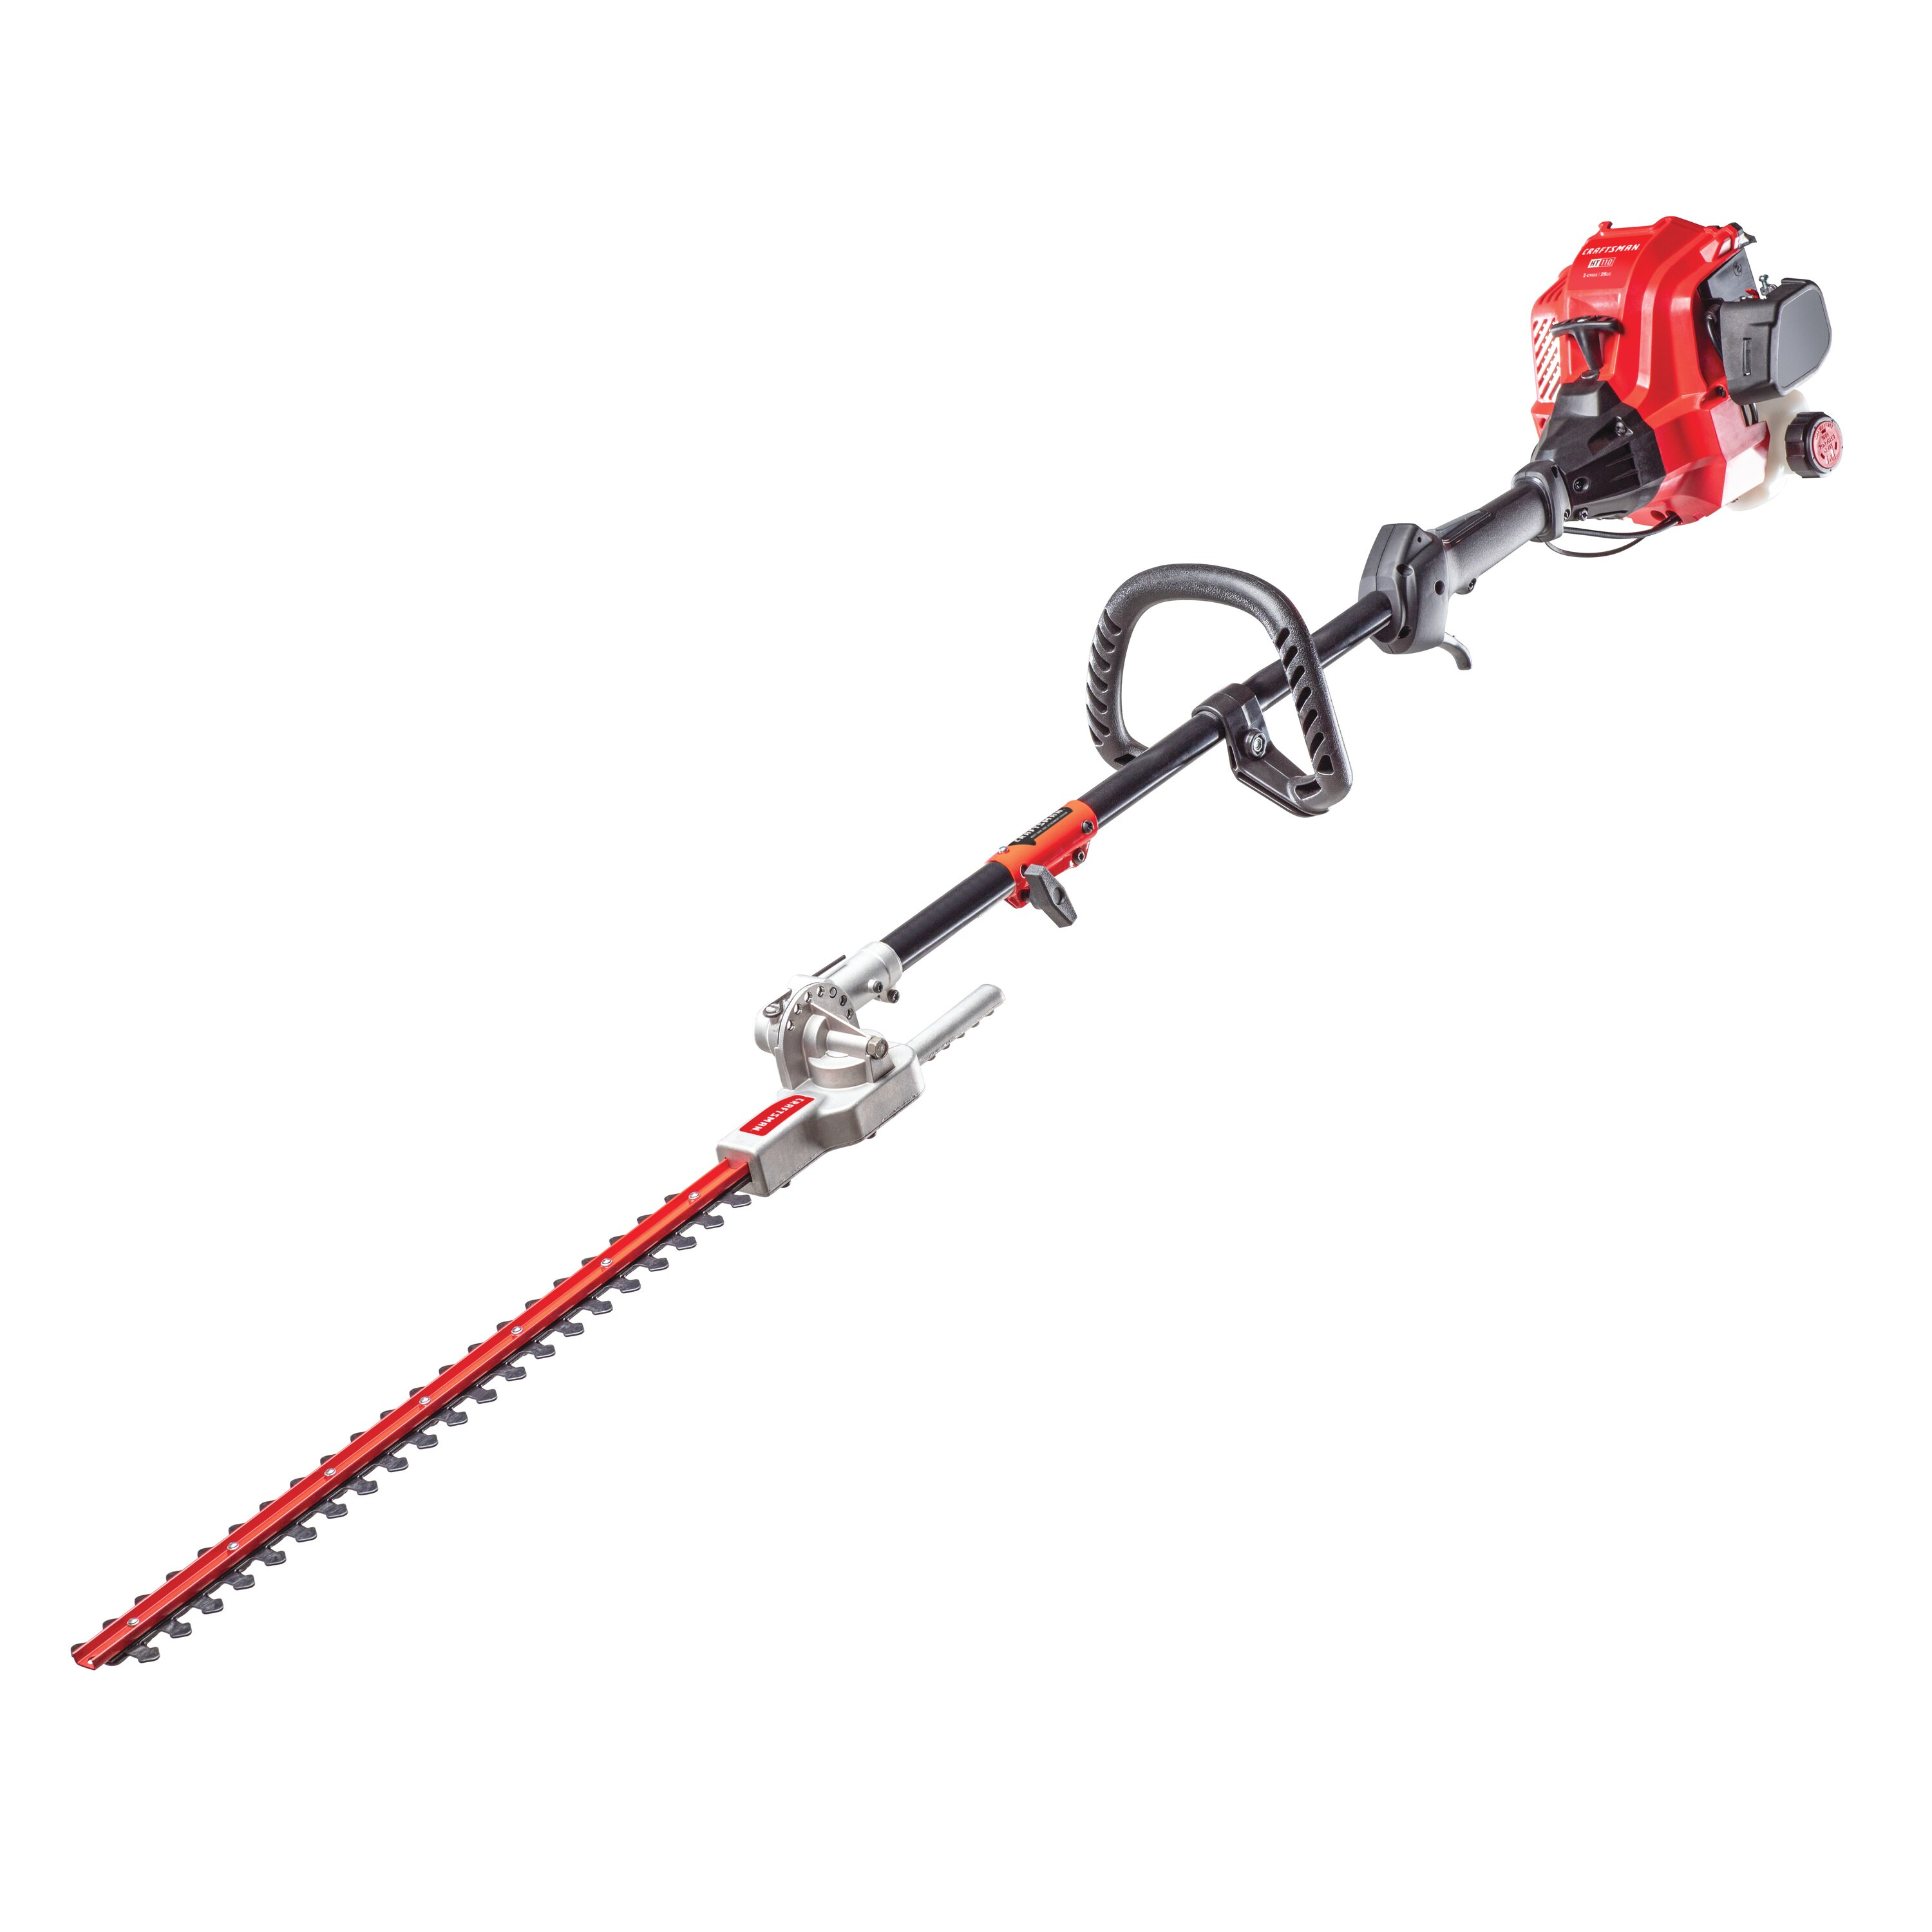 HT110 25cc 2-Cycle 22 in. Attachment Capable Gas Hedge